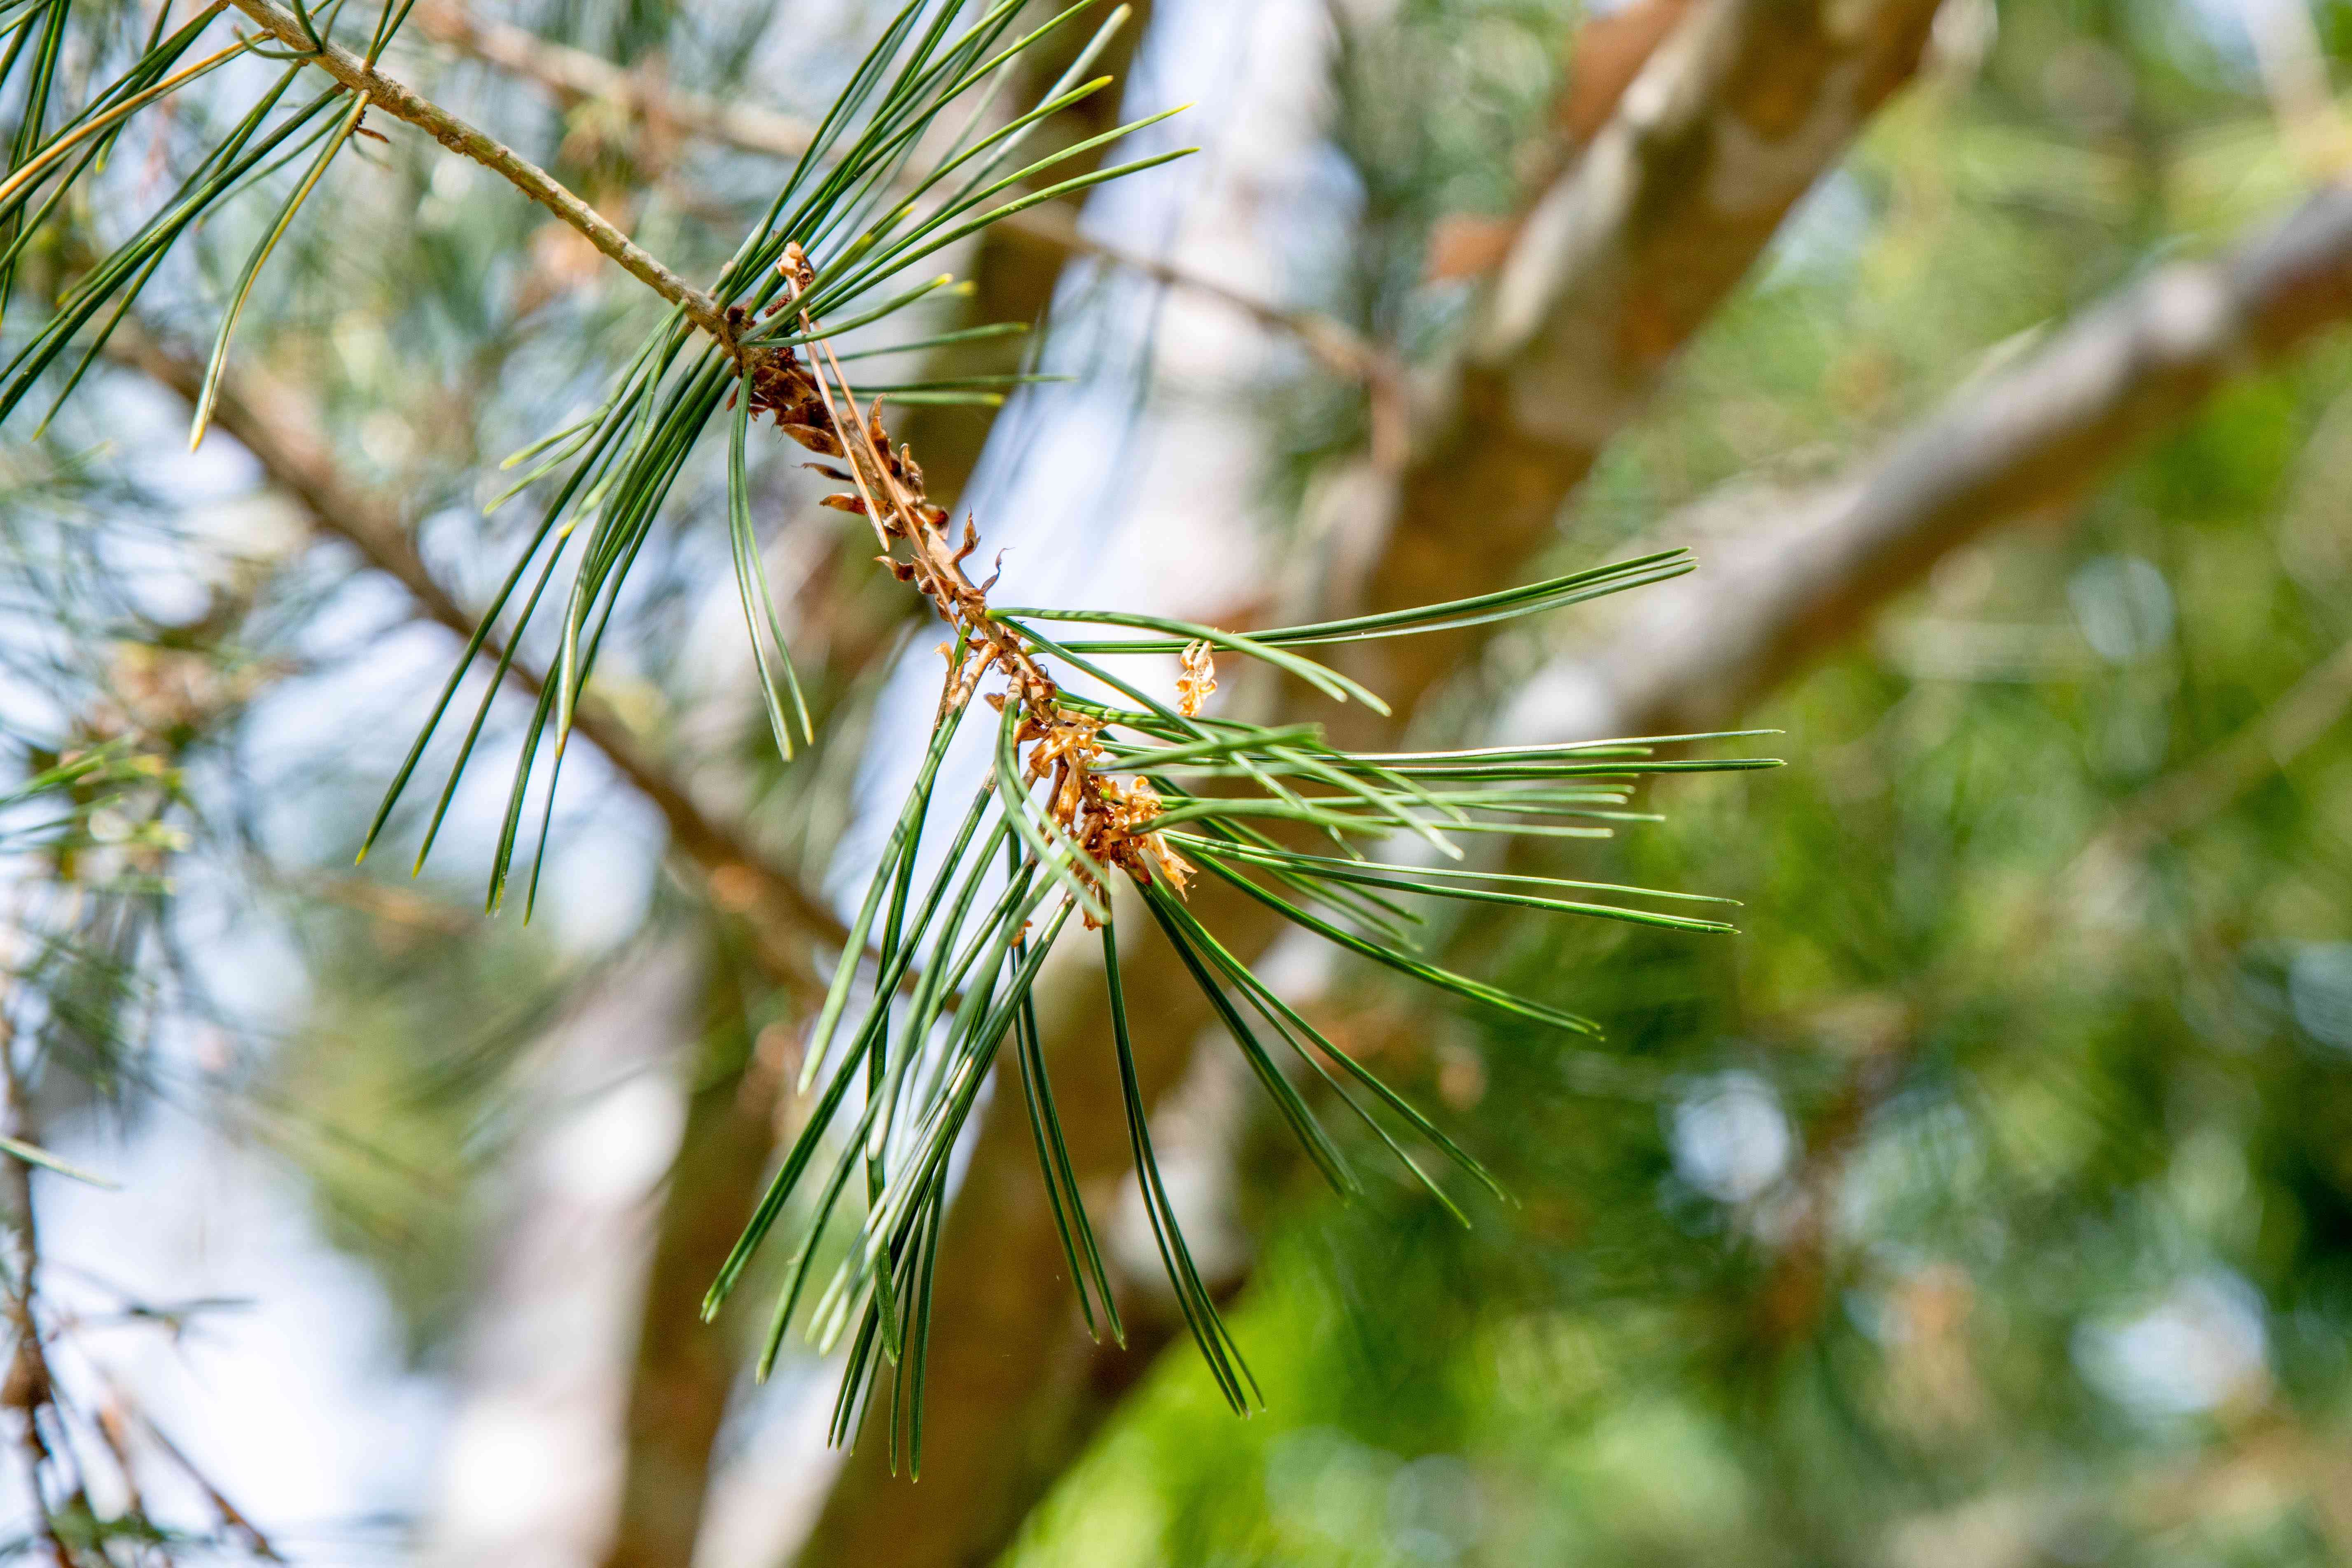 Lacebark pine tree branch with long needle hanging on end of stem closeup